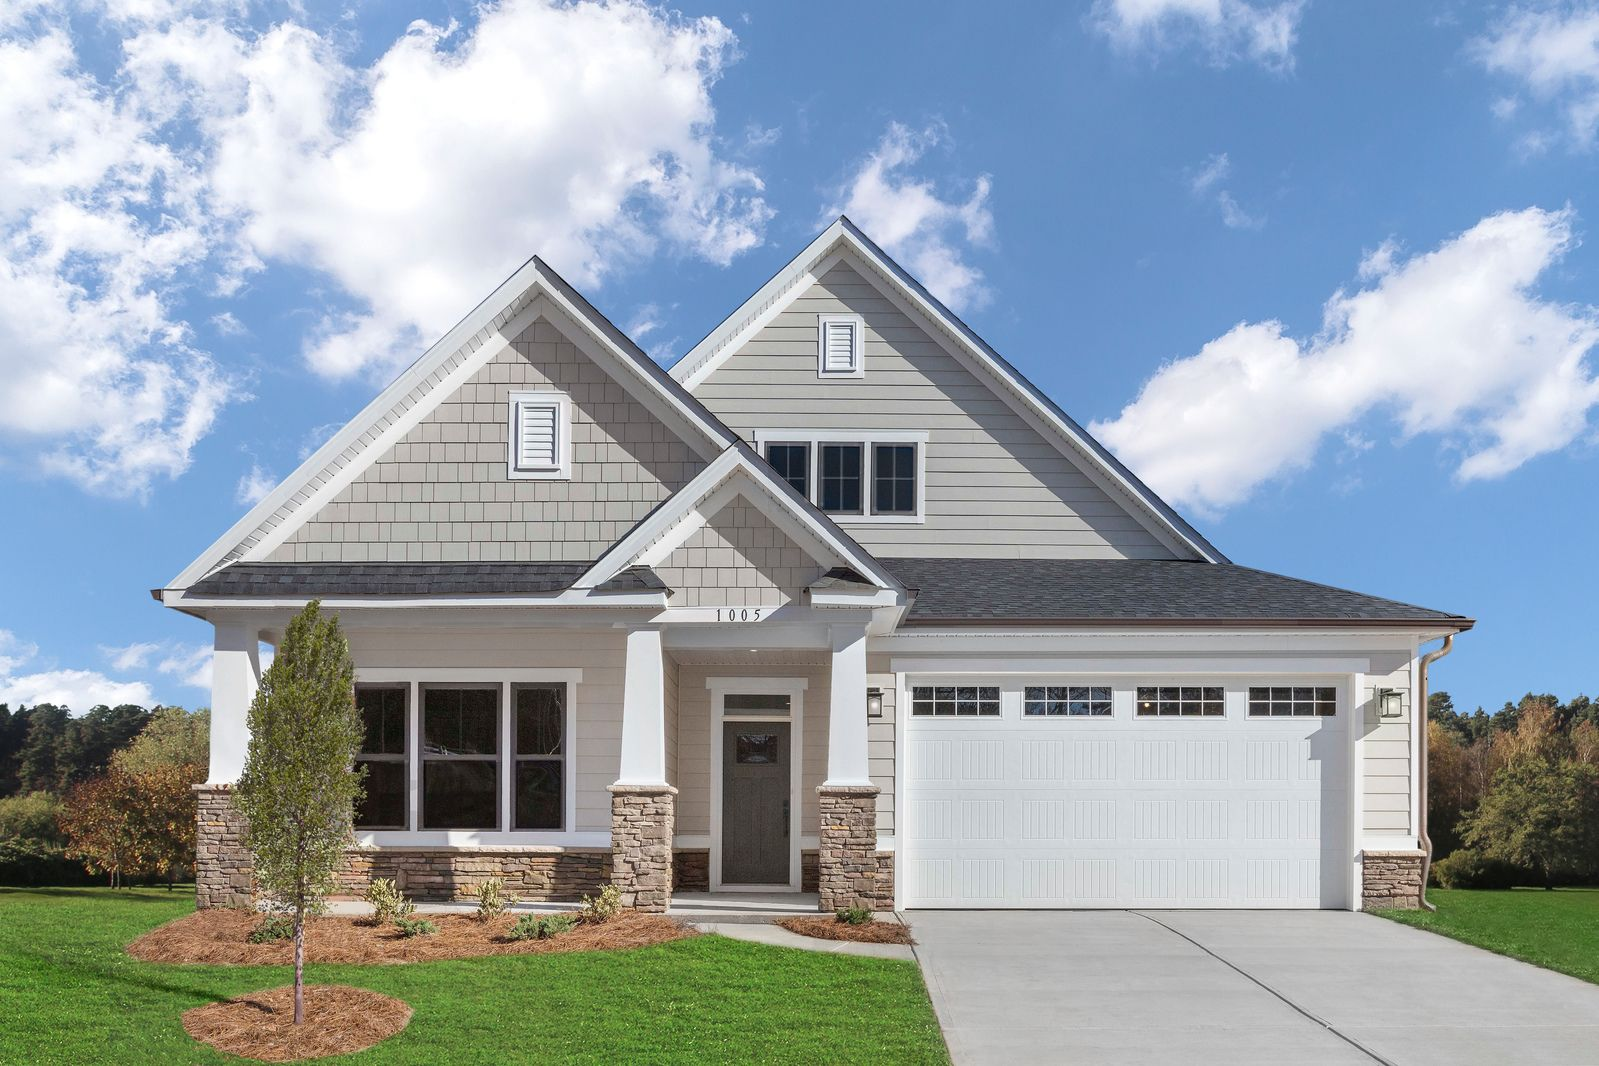 Grand Opening of Britlyn:Introducing Glen Allen's premier 55+ community featuring first floor level living & no yard work from the $390s! Live better, make friends & laugh more.Schedule a visit to attend our Grand Opening!